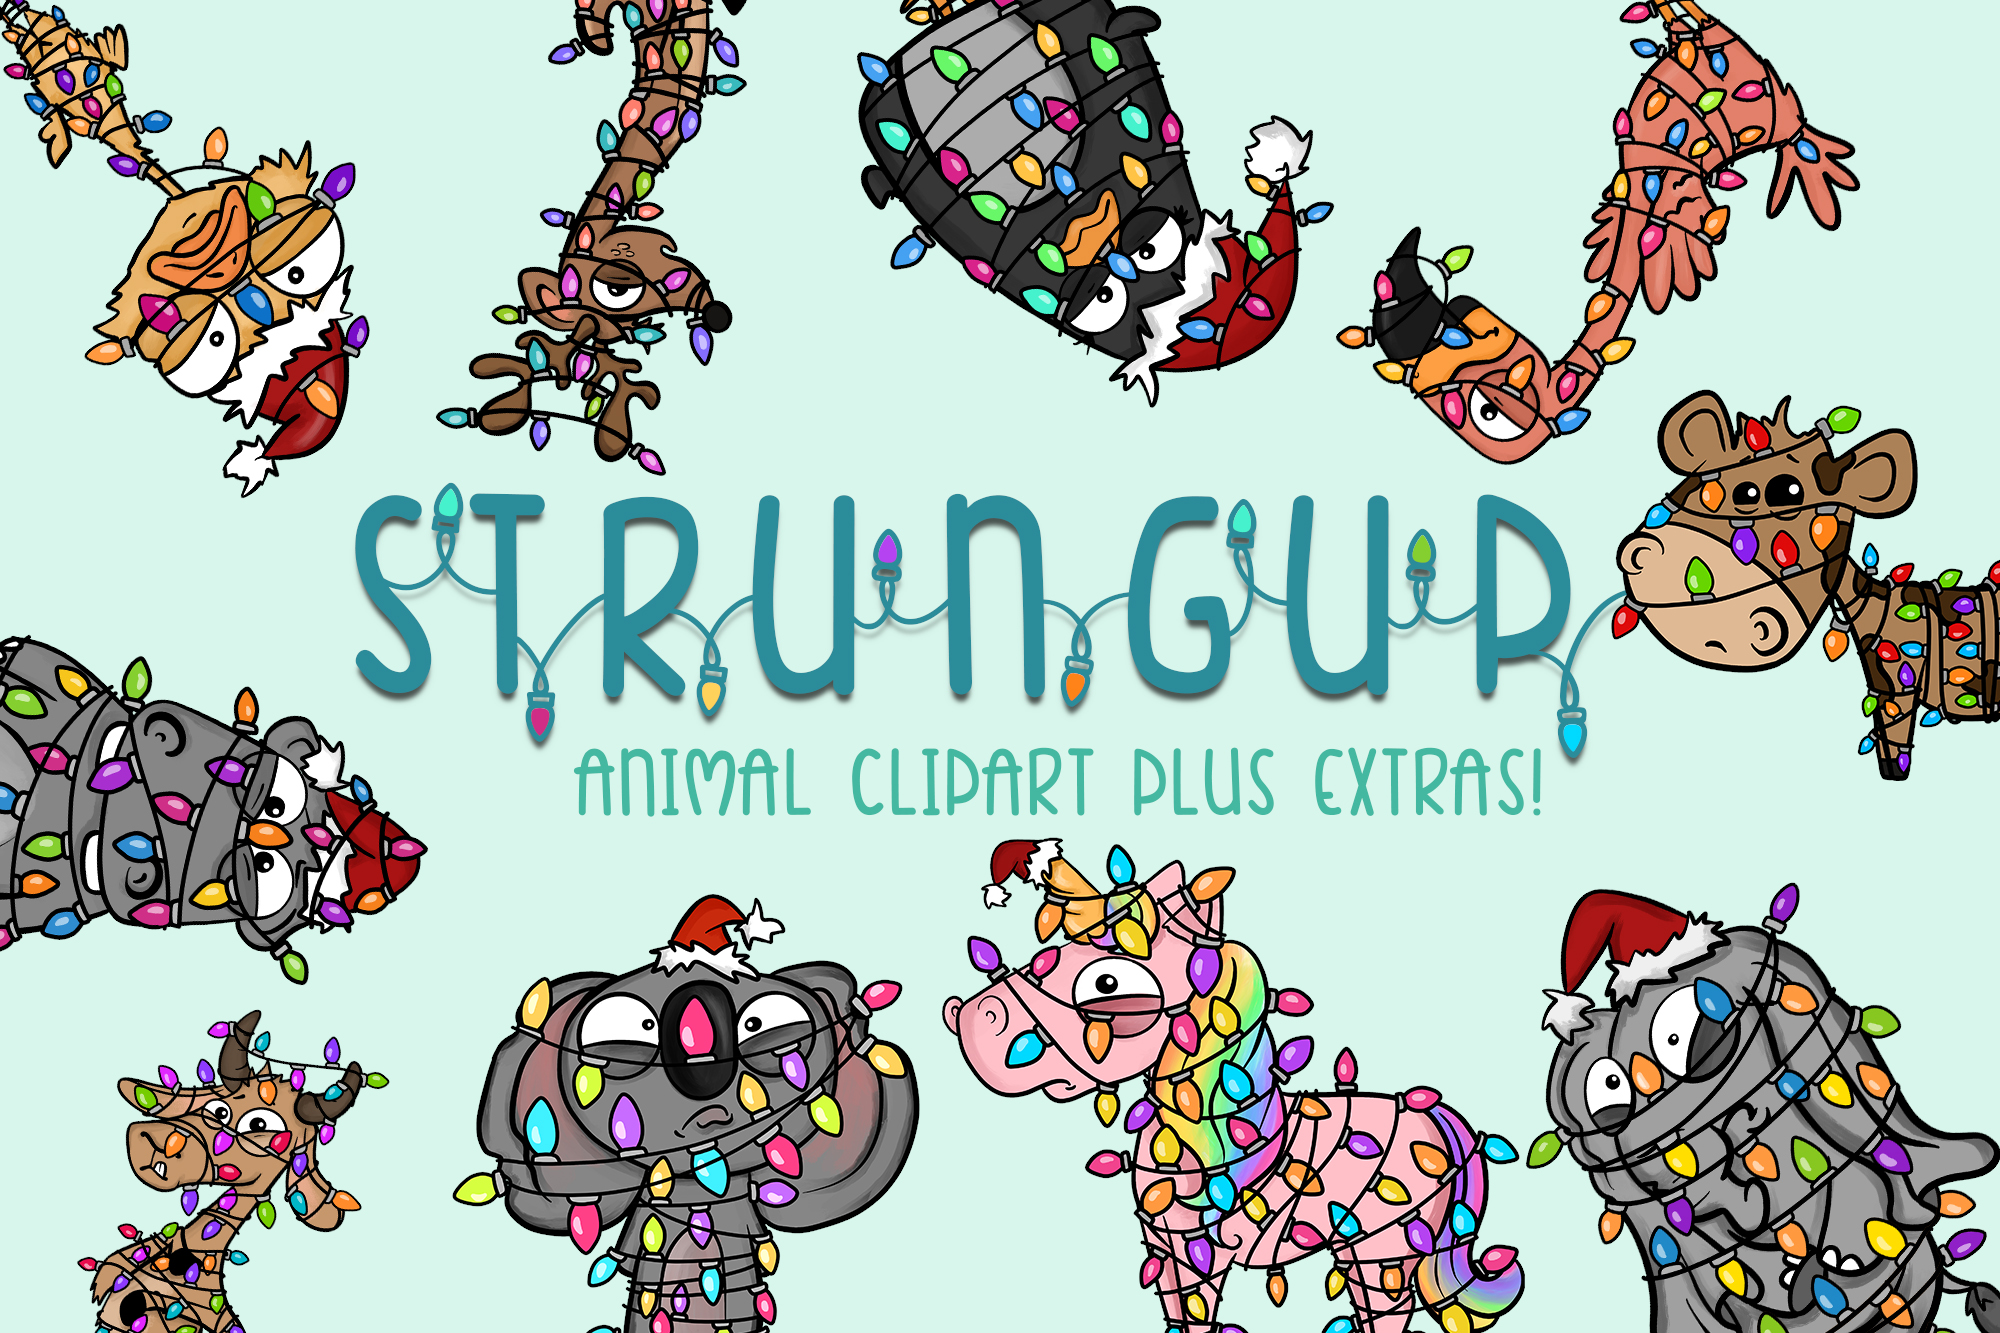 Strung Up Animals|Holiday Illustrations| Xmas Lights|Extras example image 1